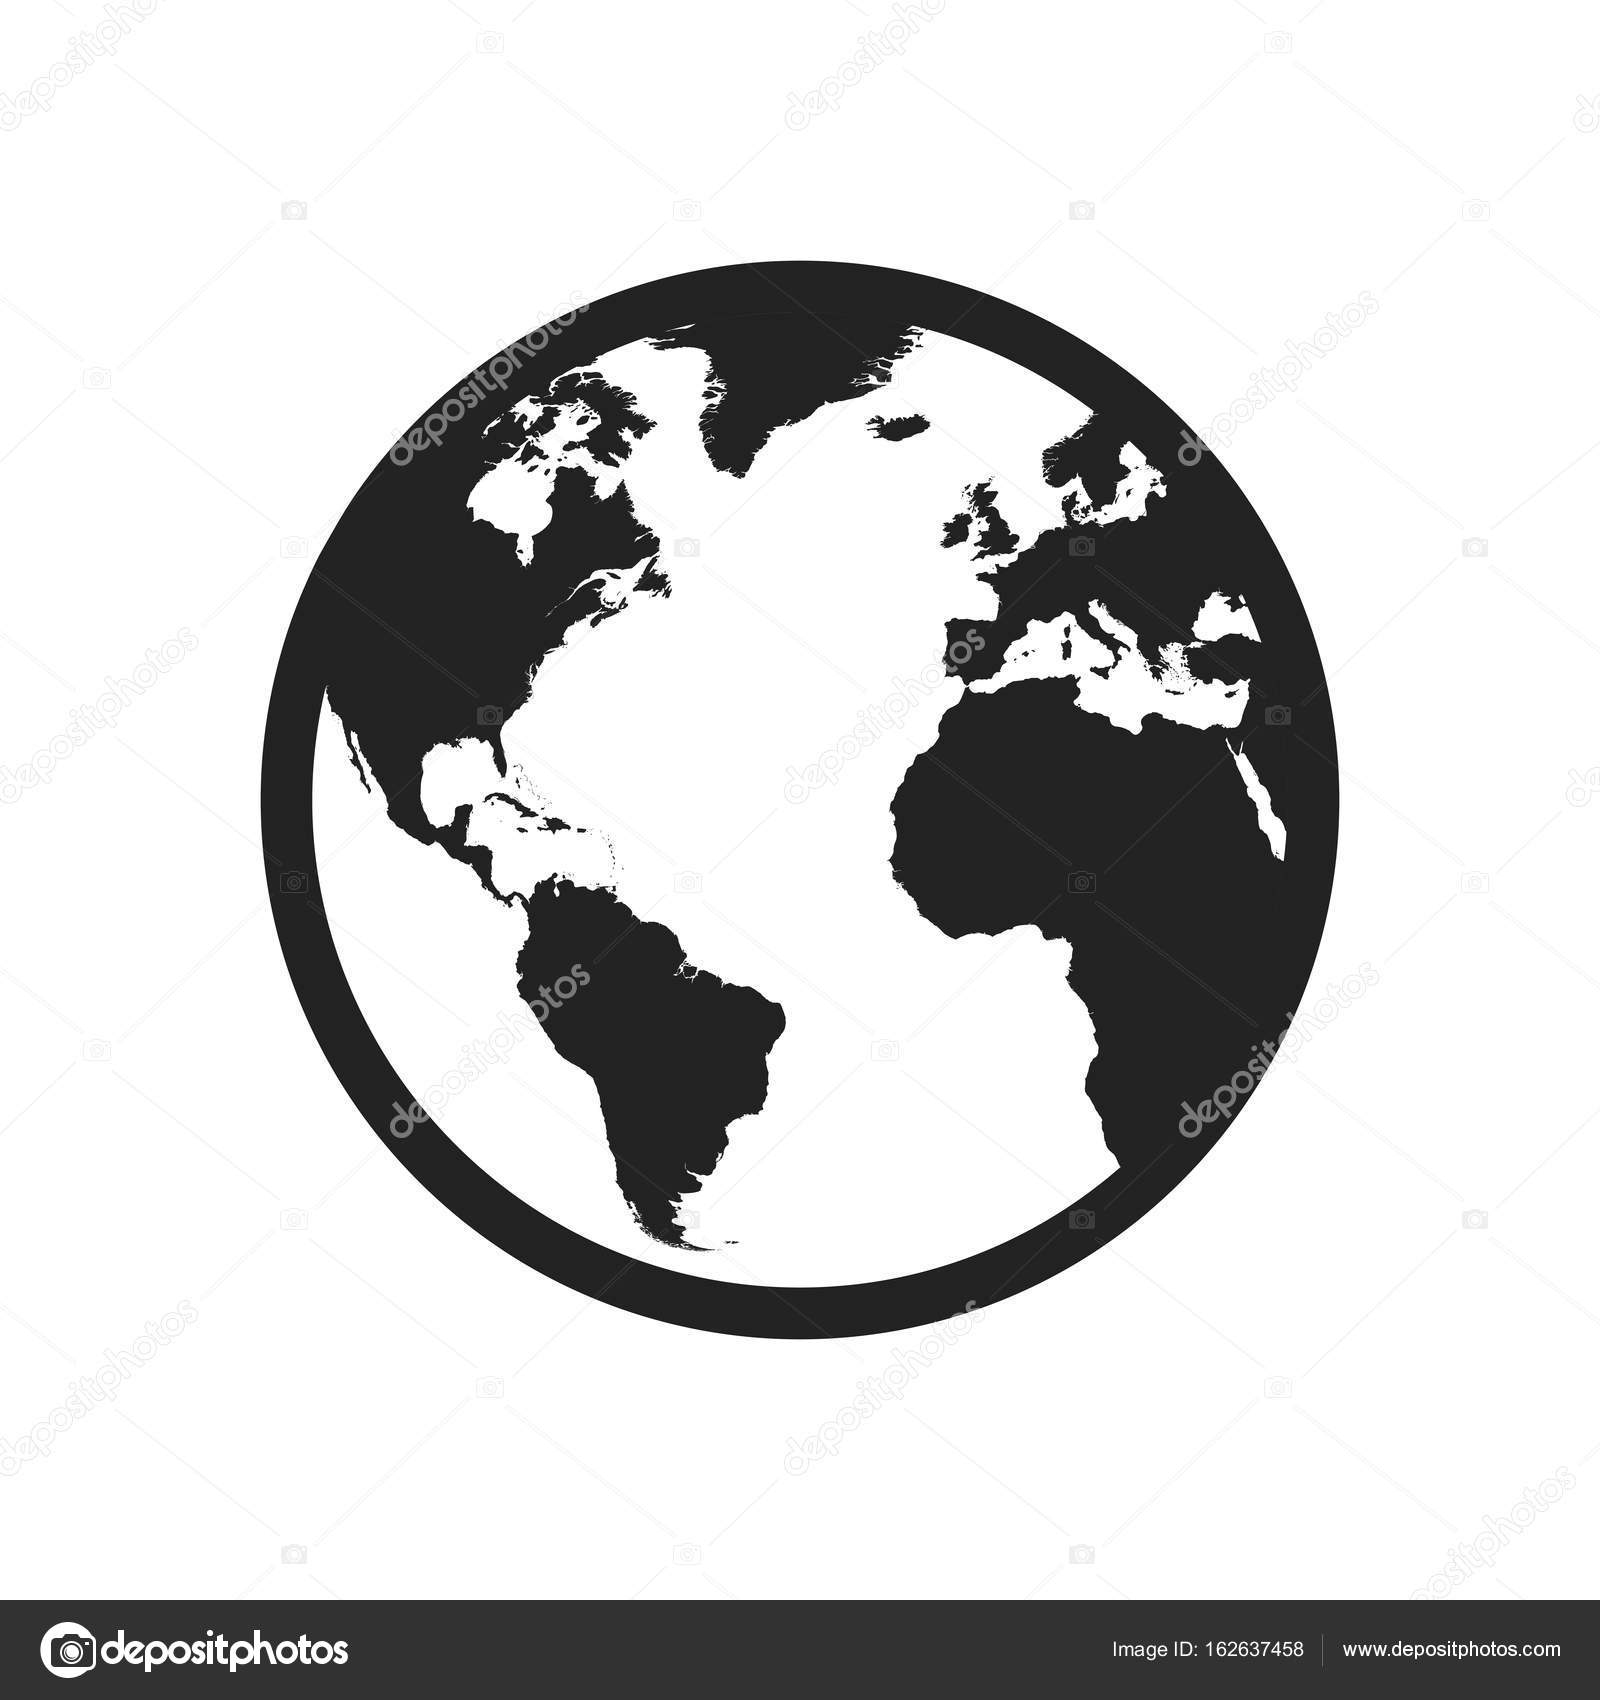 Globe world map vector icon round earth flat vector illustratio globe world map vector icon round earth flat vector illustratio stock vector gumiabroncs Image collections